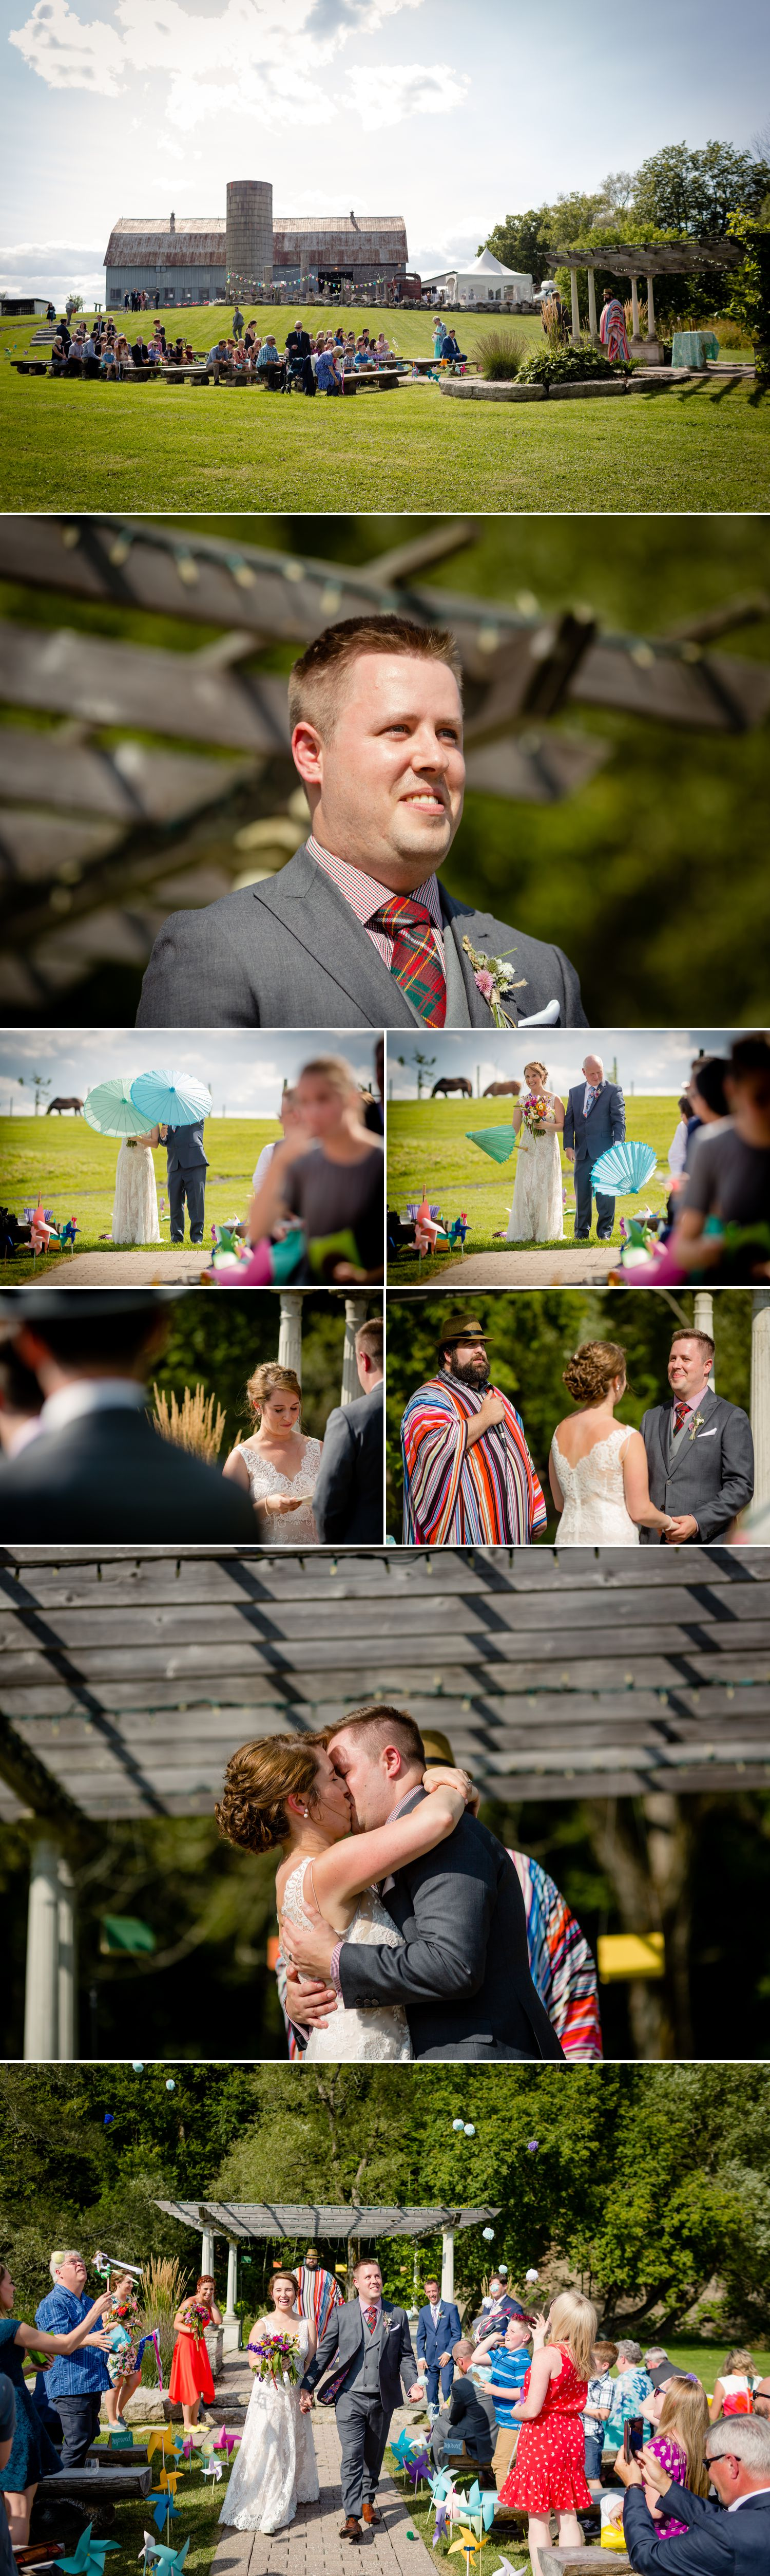 A wedding reception taking place outside on a summer day at Haymow Farm in Ottawa